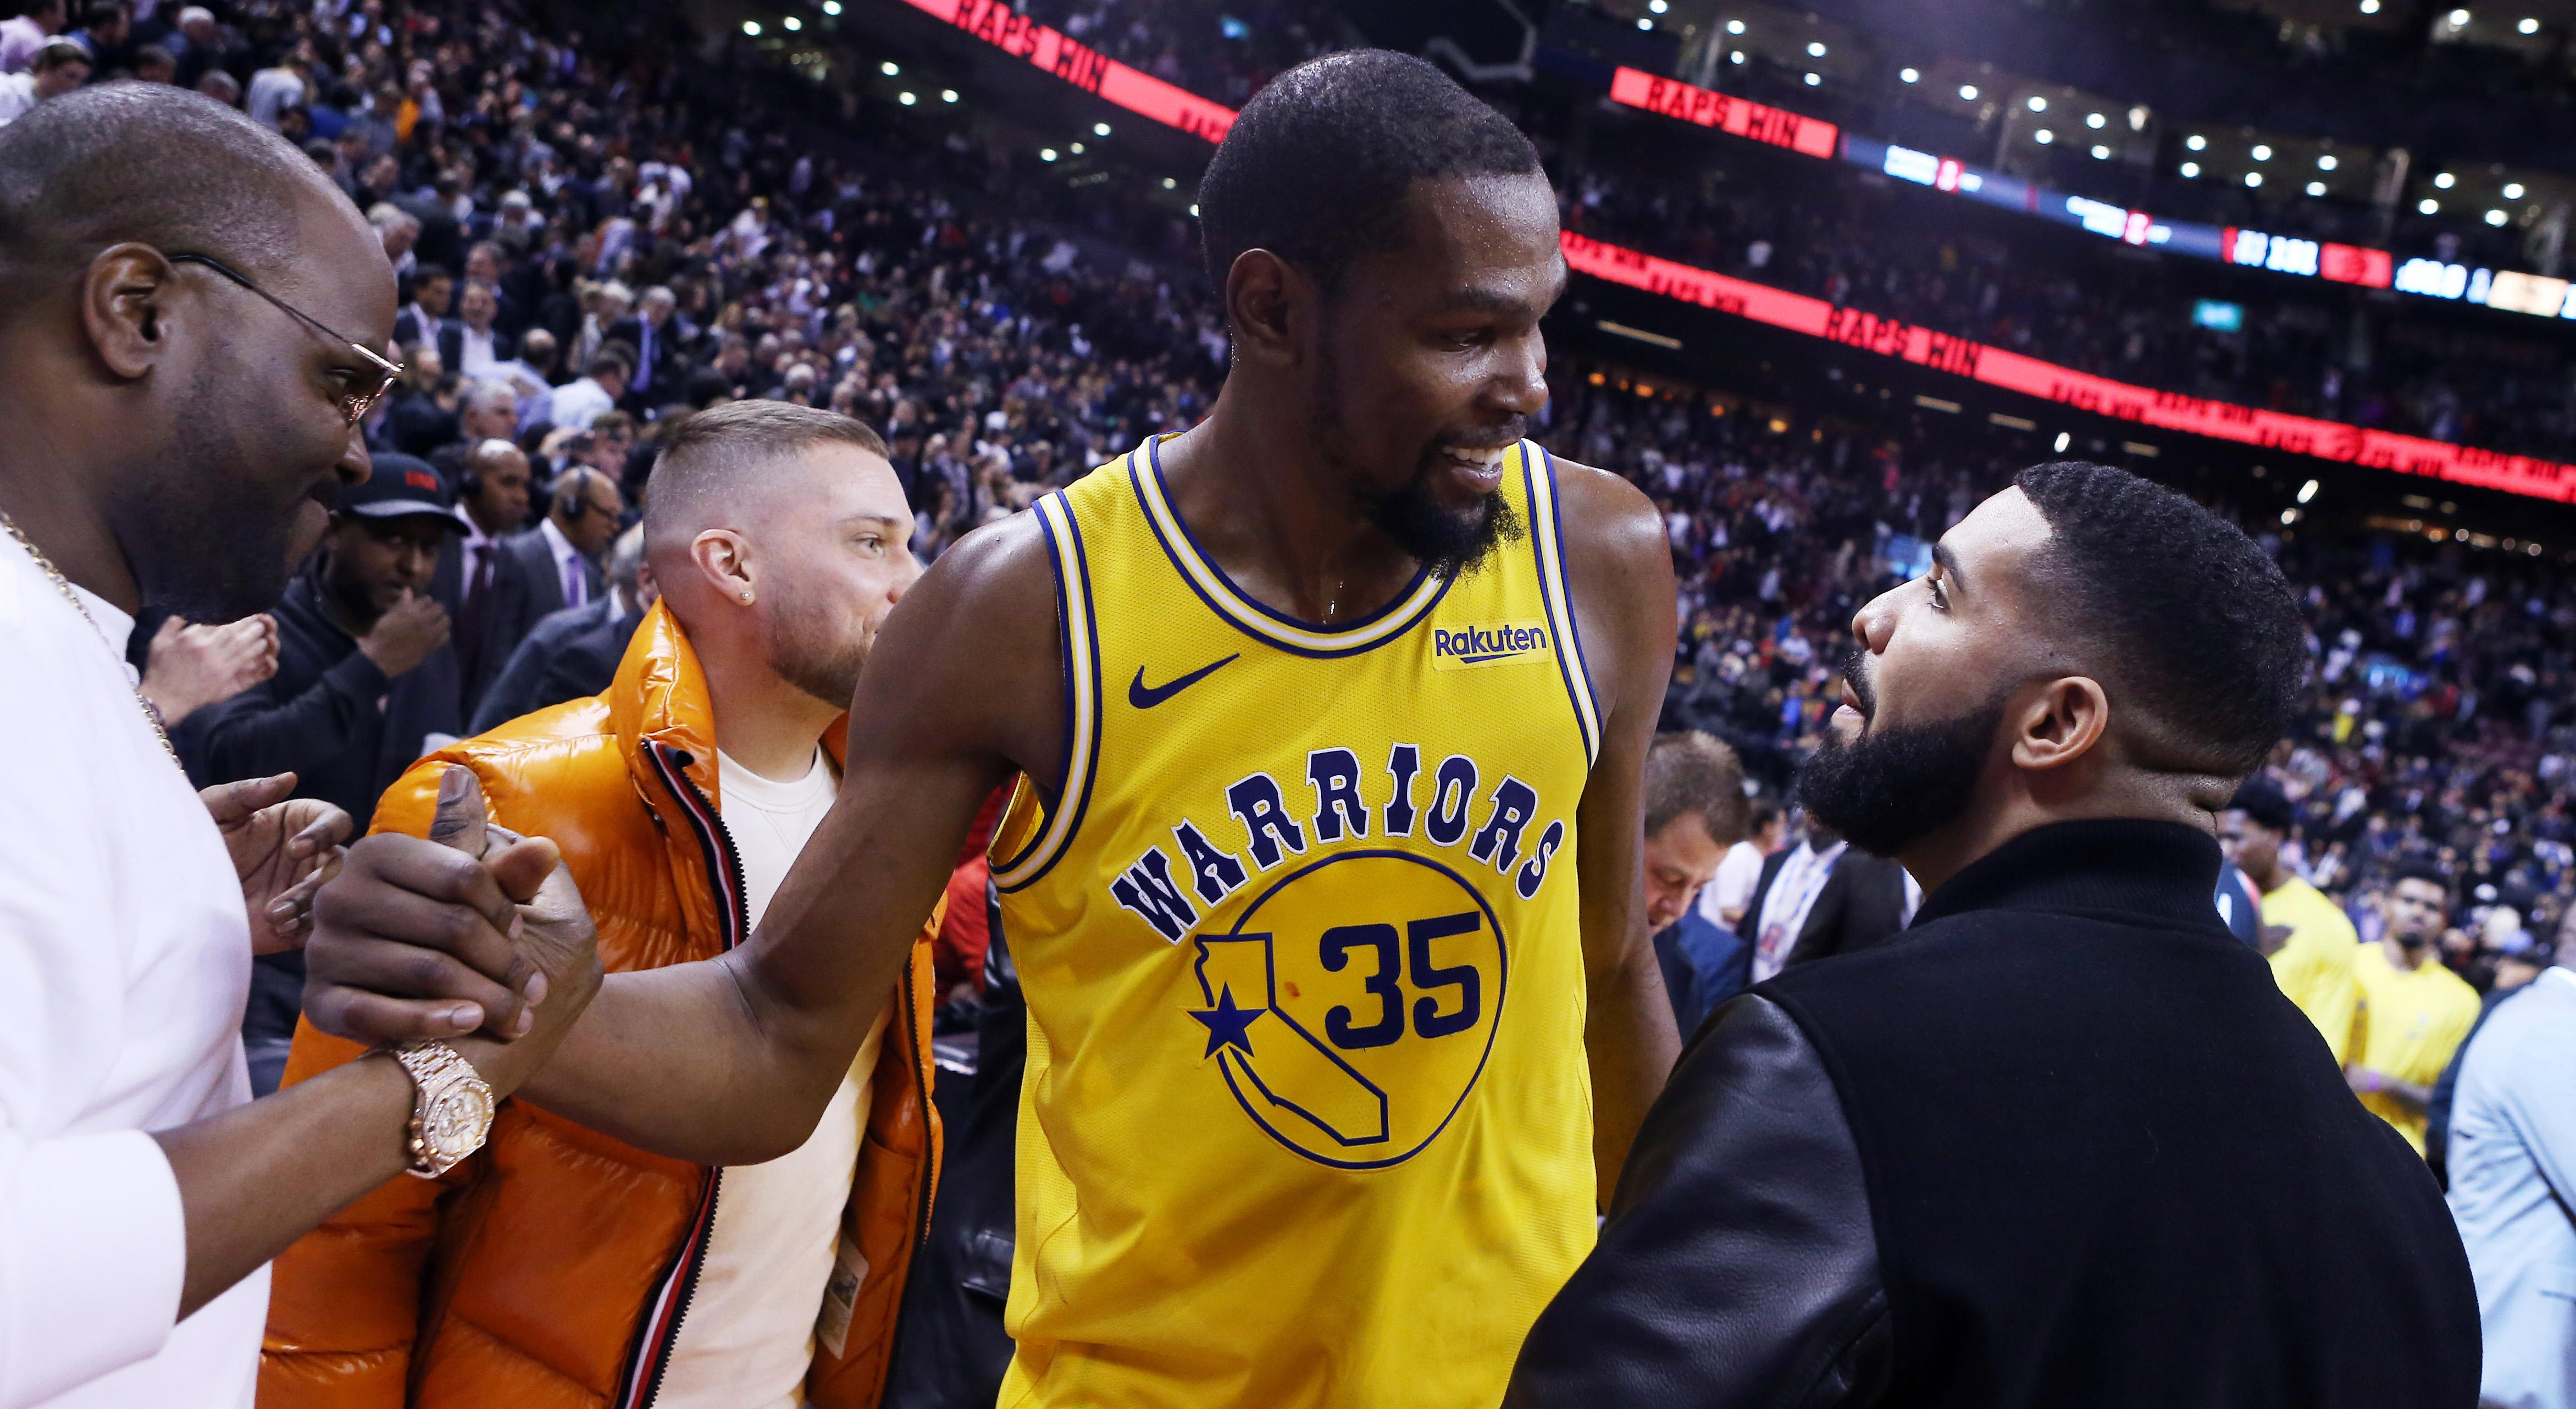 909d1eed953 Kevin Durant gives Drake jersey after loss to Raptors